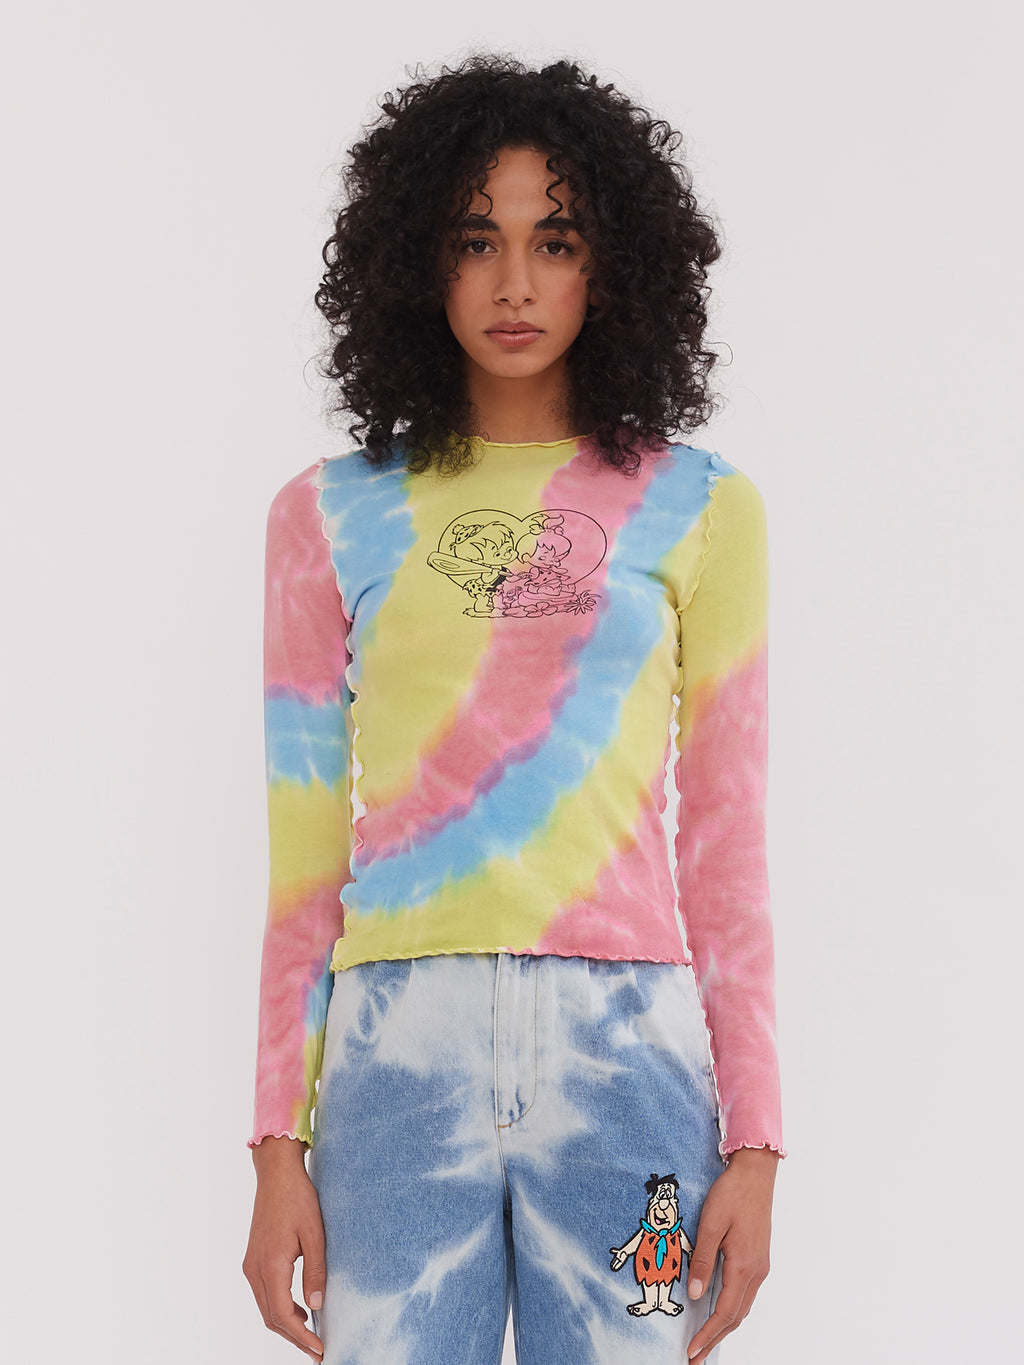 Lazy Oaf x The Flintstones Bedrock Tie Dye Top